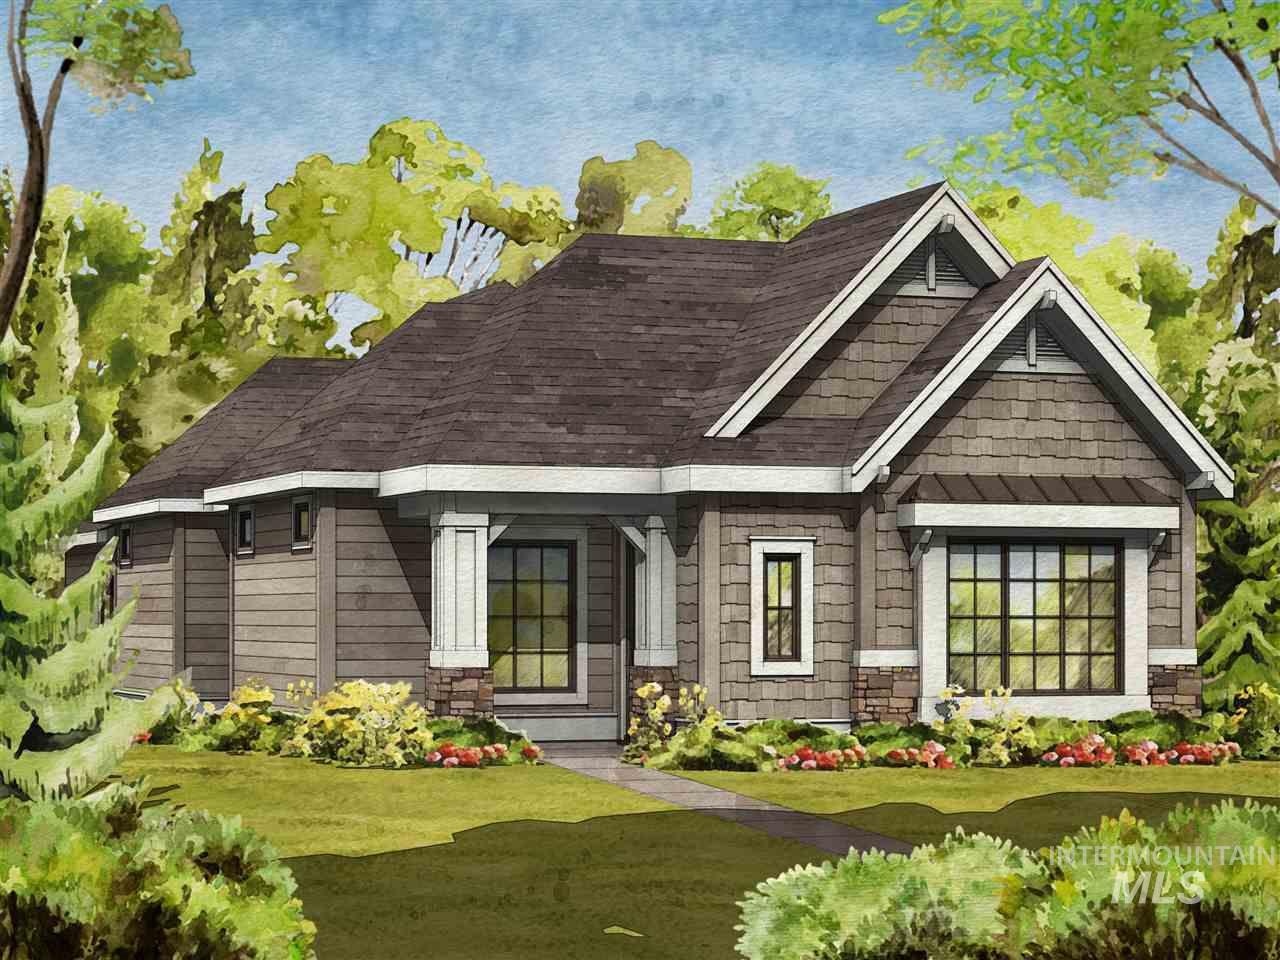 The Prairie Harvest by Brighton Homes, Beautiful open concept makes this home perfect for entertaining. Relax in the beautiful master suite with a  walk-in shower and large closet. The beautiful kitchen features custom cabinets, walk-in pantry, Bosch stainless steel appliances package and Kohler throughout - a Brighton standard!  This home is 100% Energy Star Certified. Interior specs shown are subject to change prior to completion date.